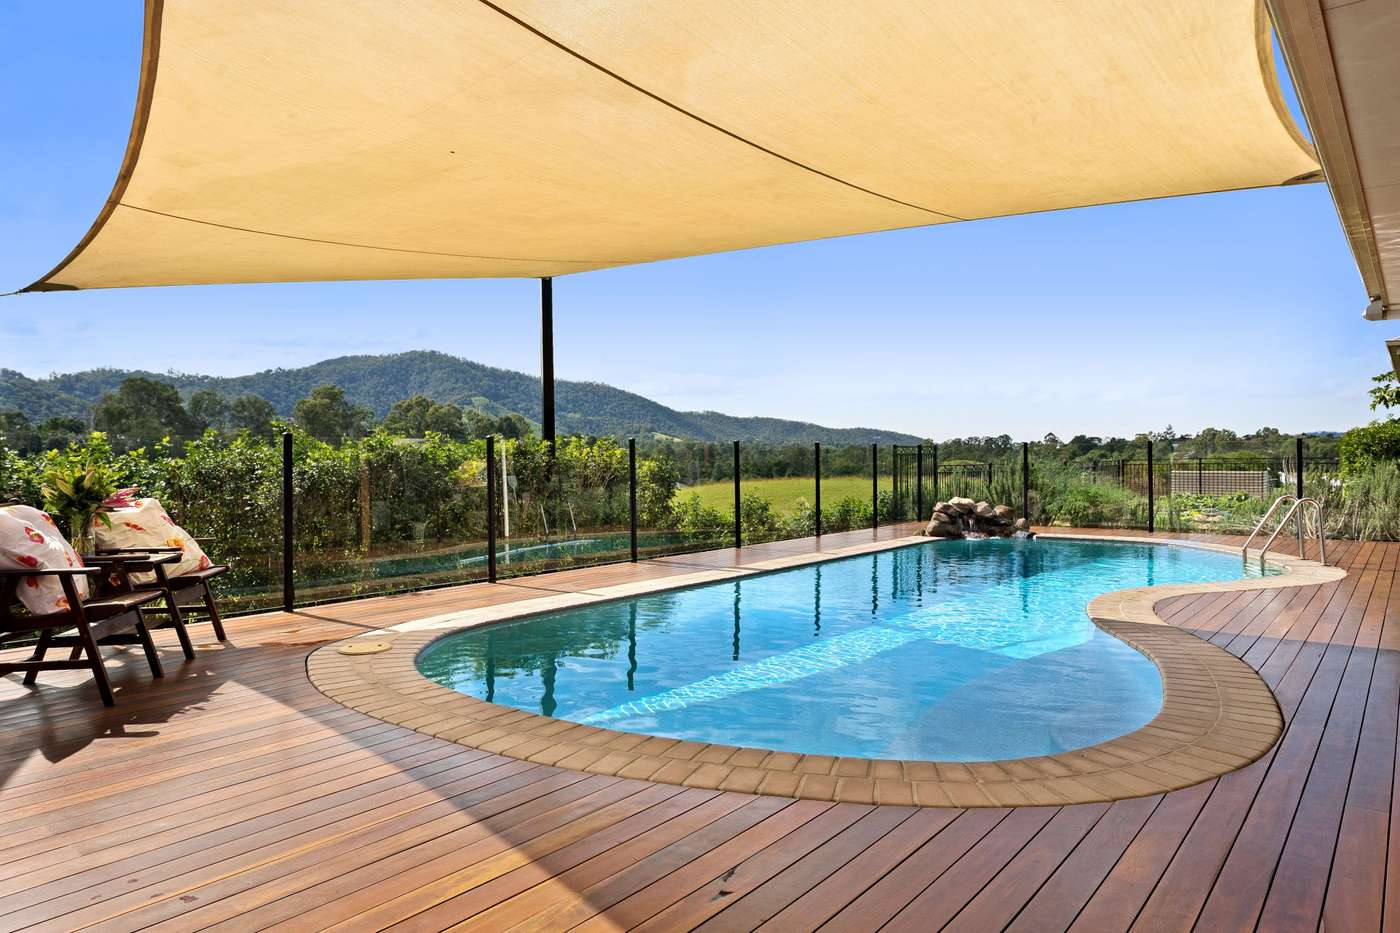 Main view of Homely house listing, 7 Haigh Crescent, Samford Valley, QLD 4520